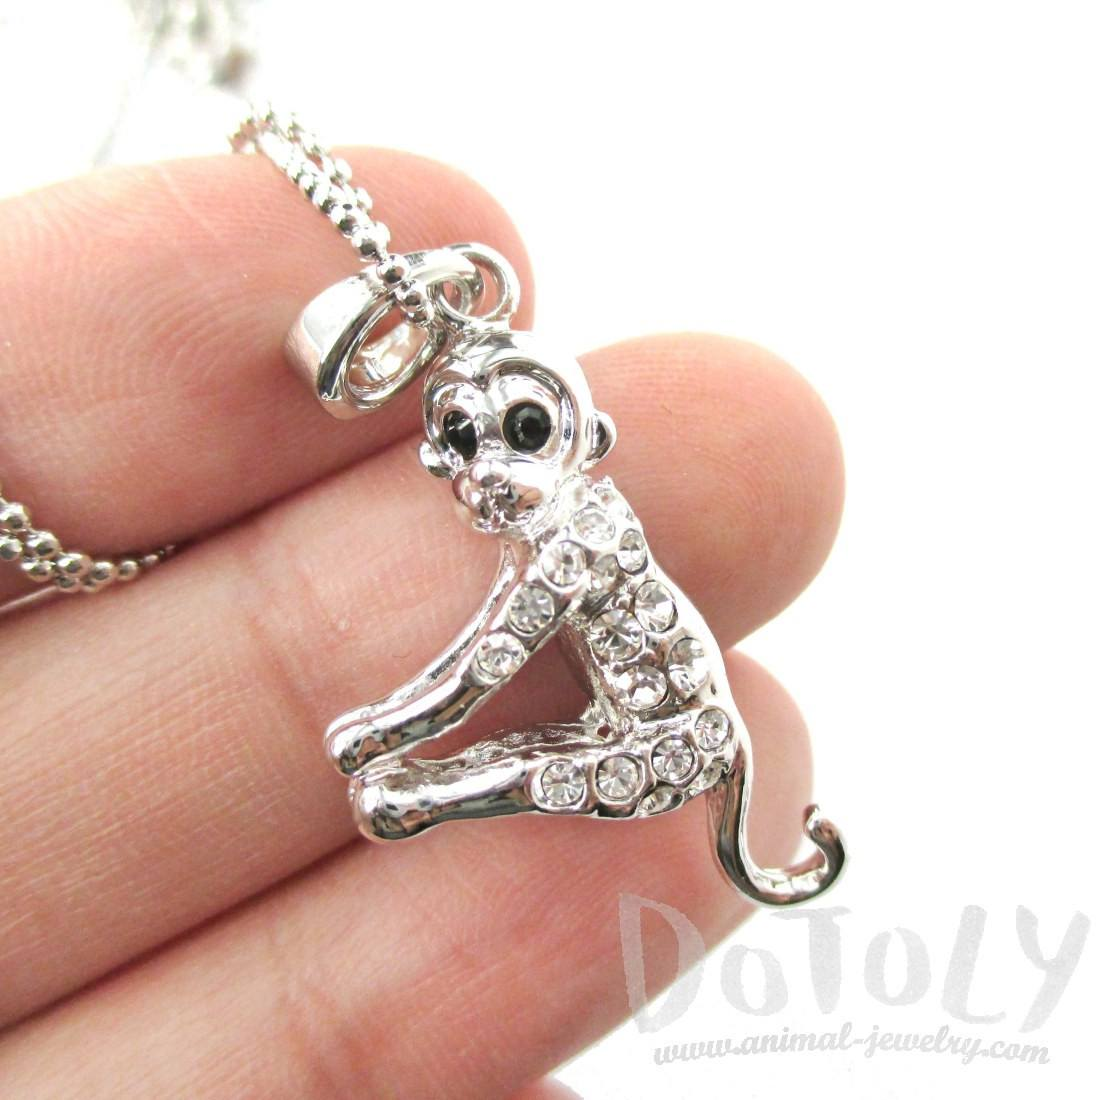 3D Monkey Shaped Rhinestone Pendant Necklace in Silver